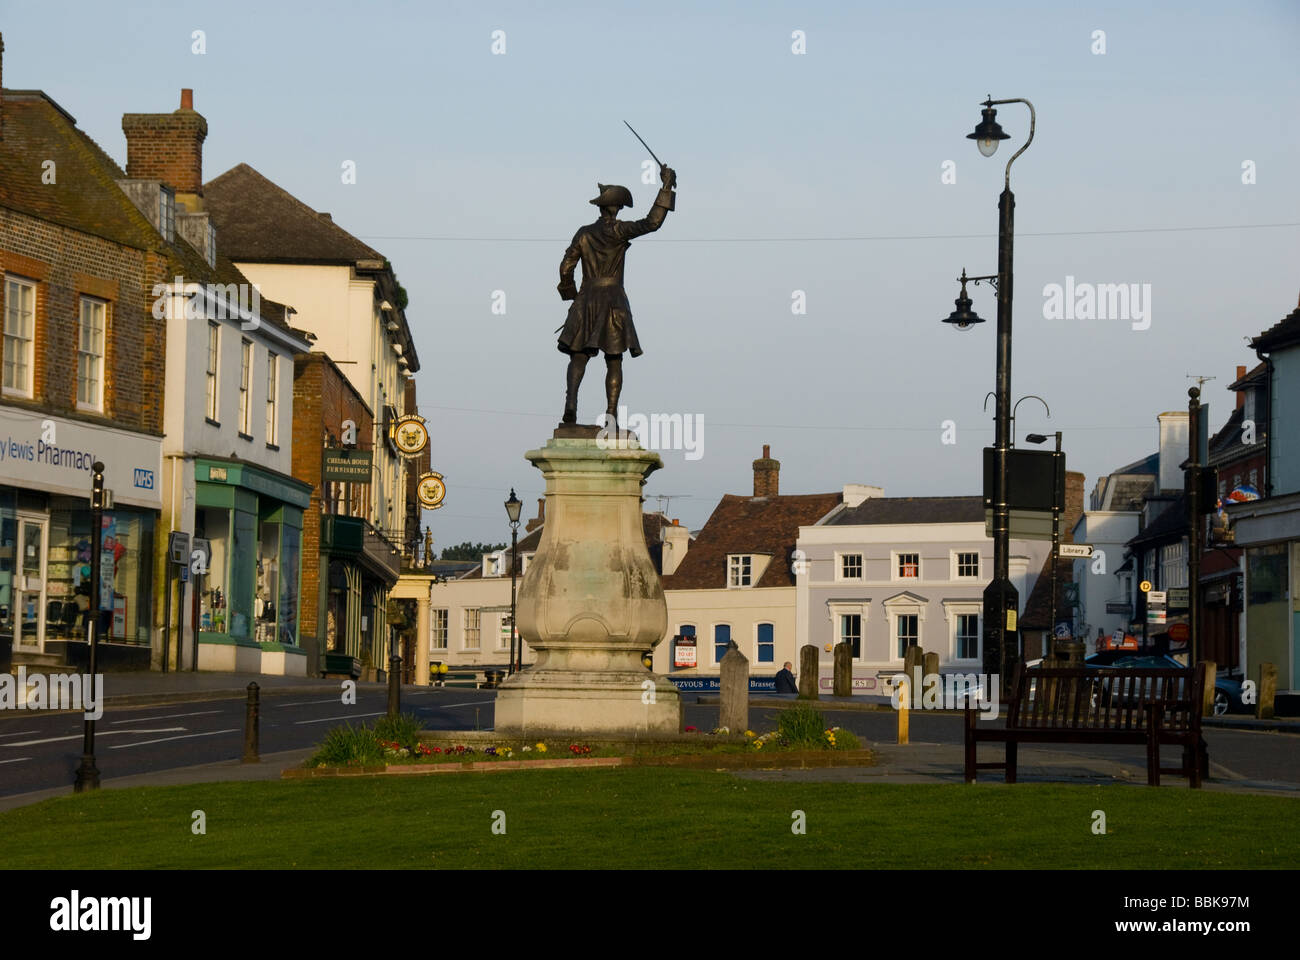 Village green, Market Square and statue of General James Wolfe, Westerham, Kent, England - Stock Image